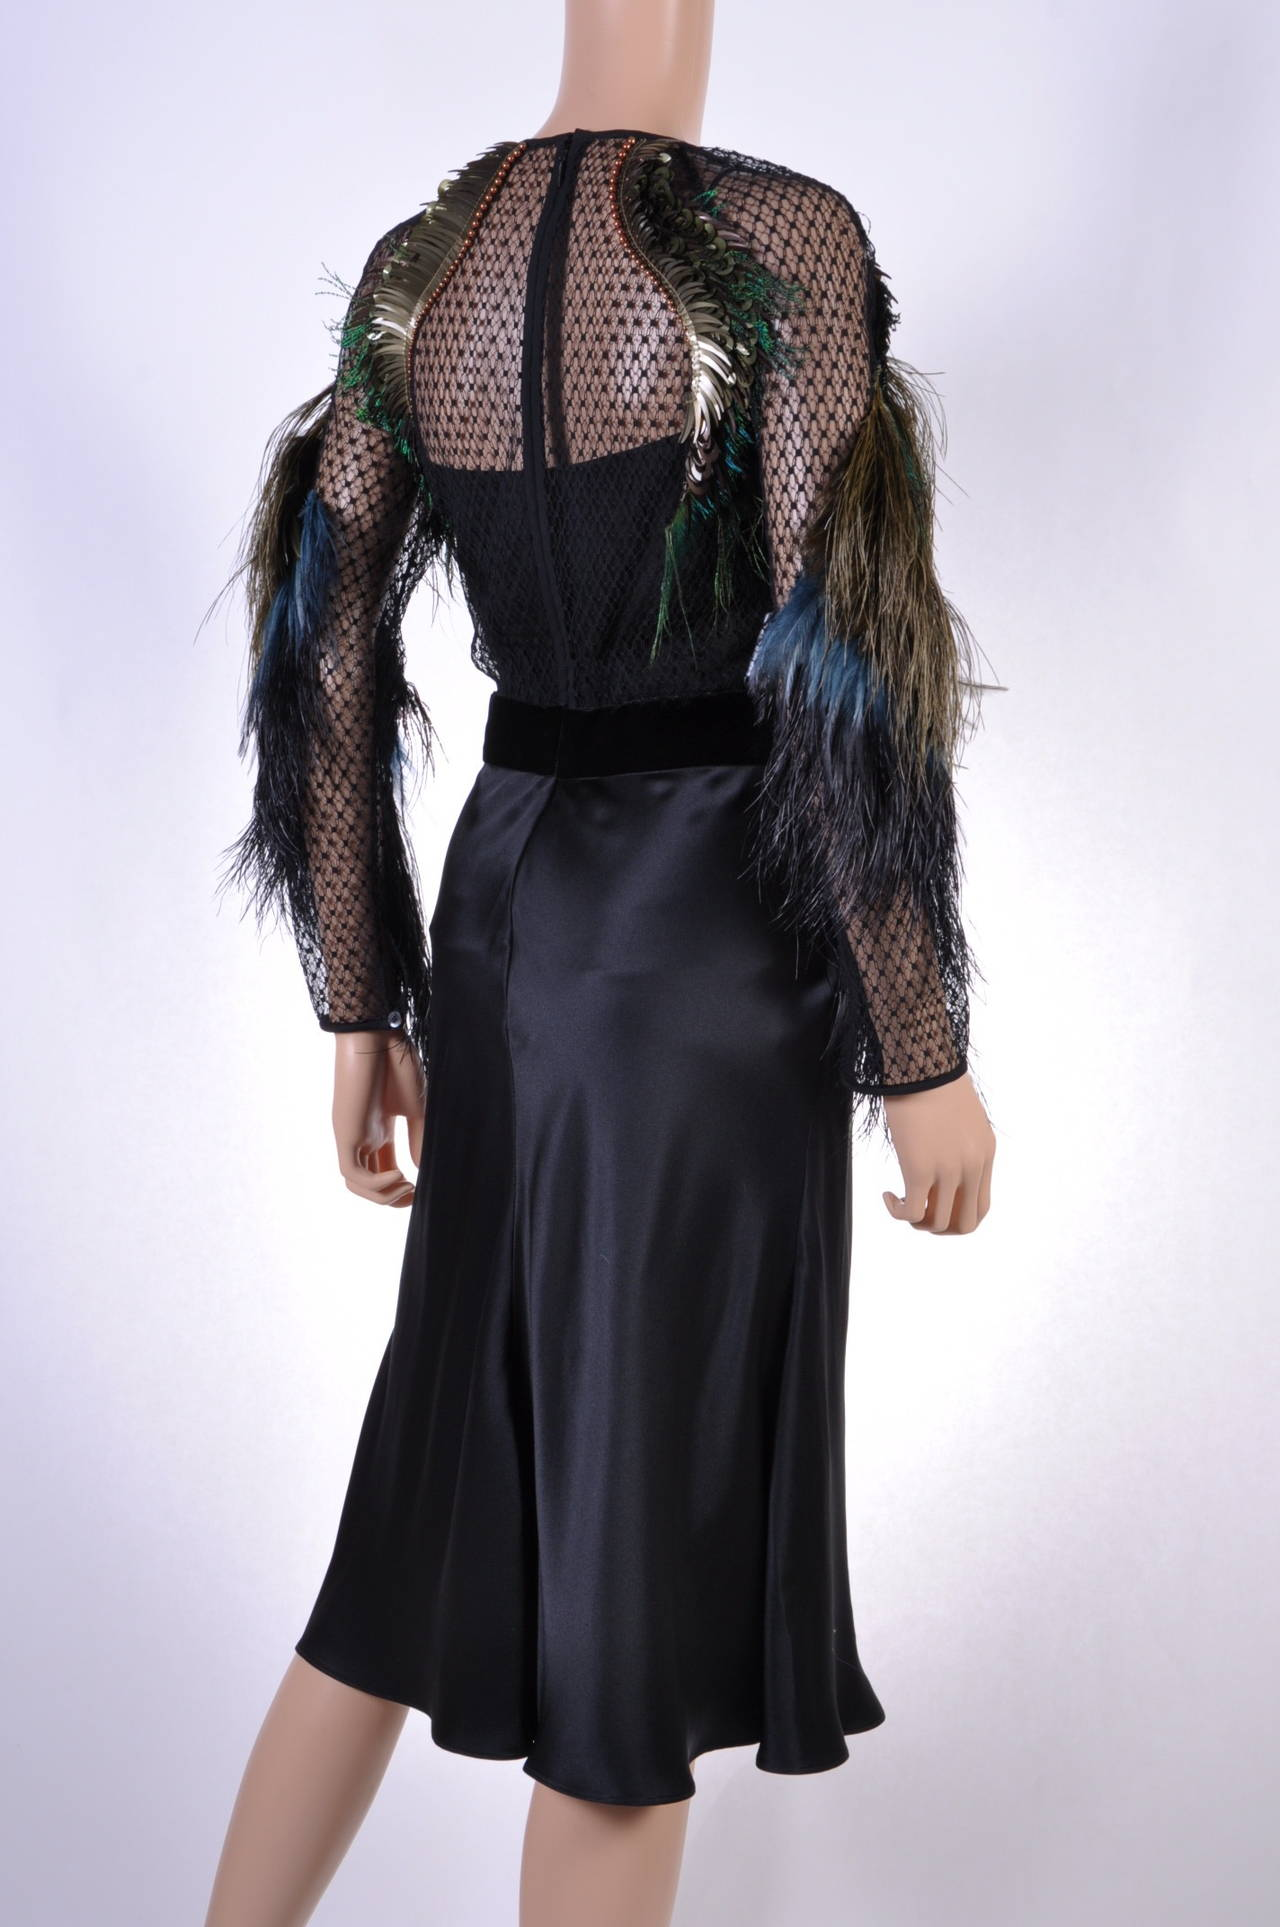 Gucci Feather Embroidered Evening Dress For Sale 3